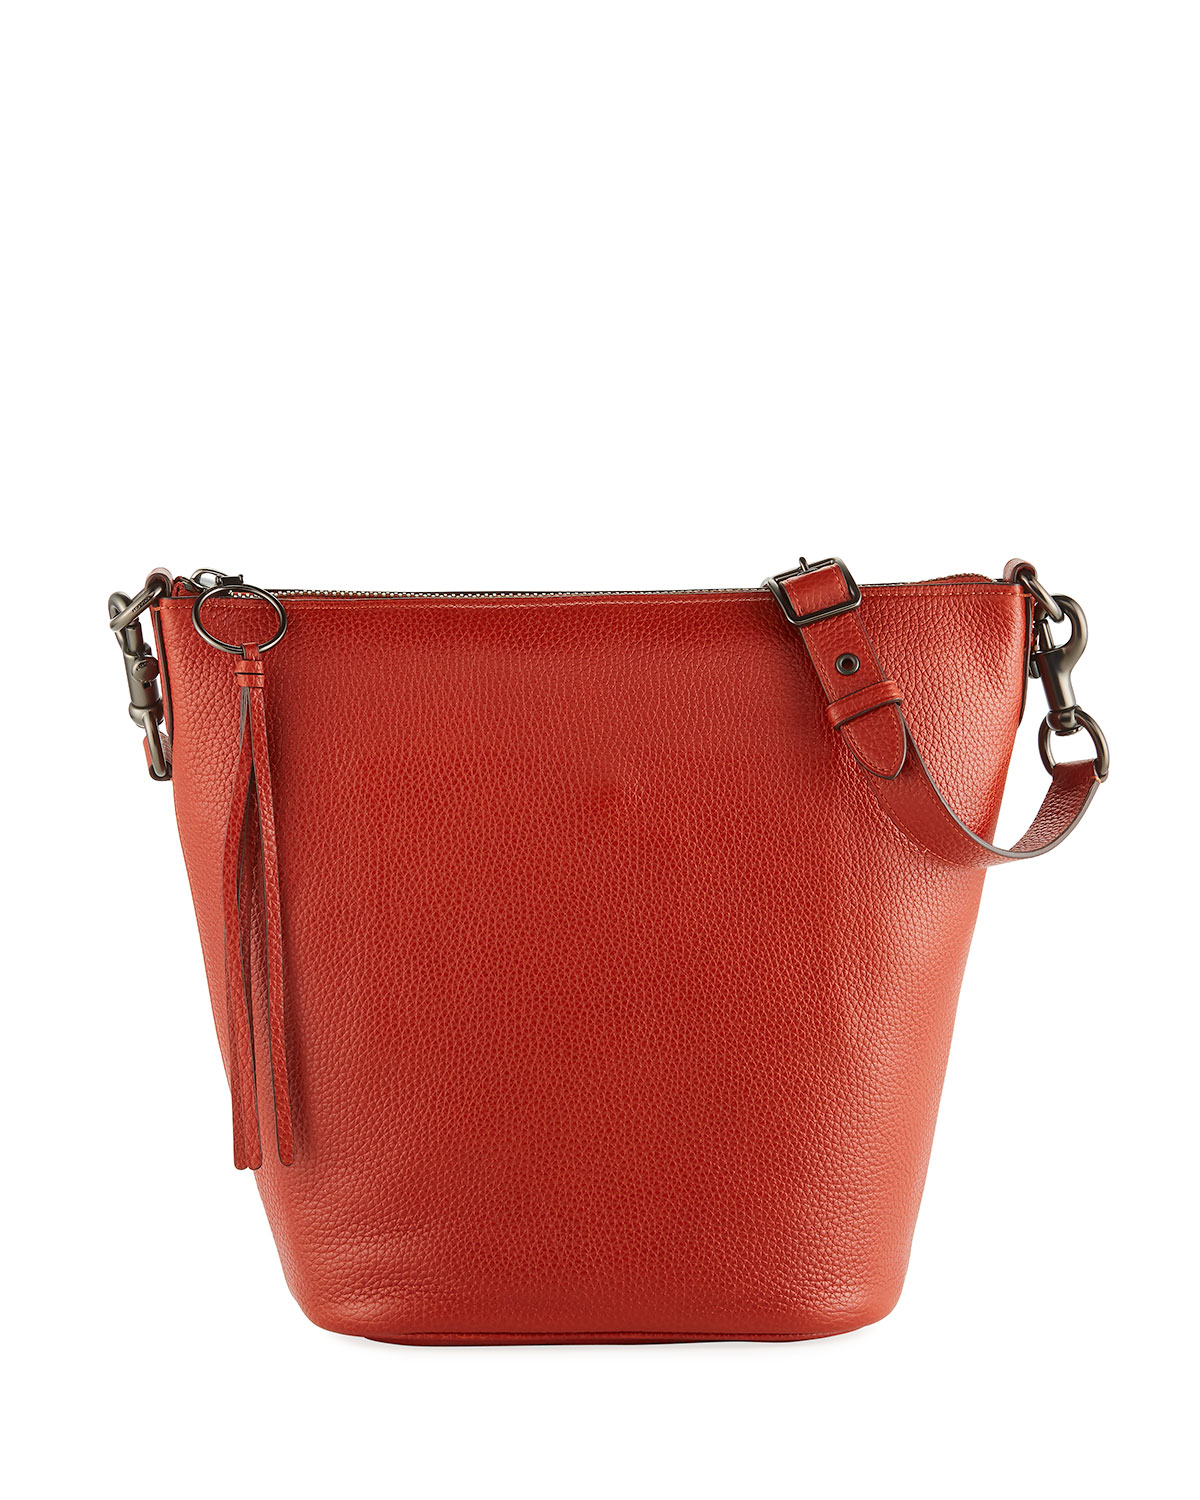 Coach 1941 Glove-Tanned Pebbled Leather Bucket Bag  bafd3071dffb6